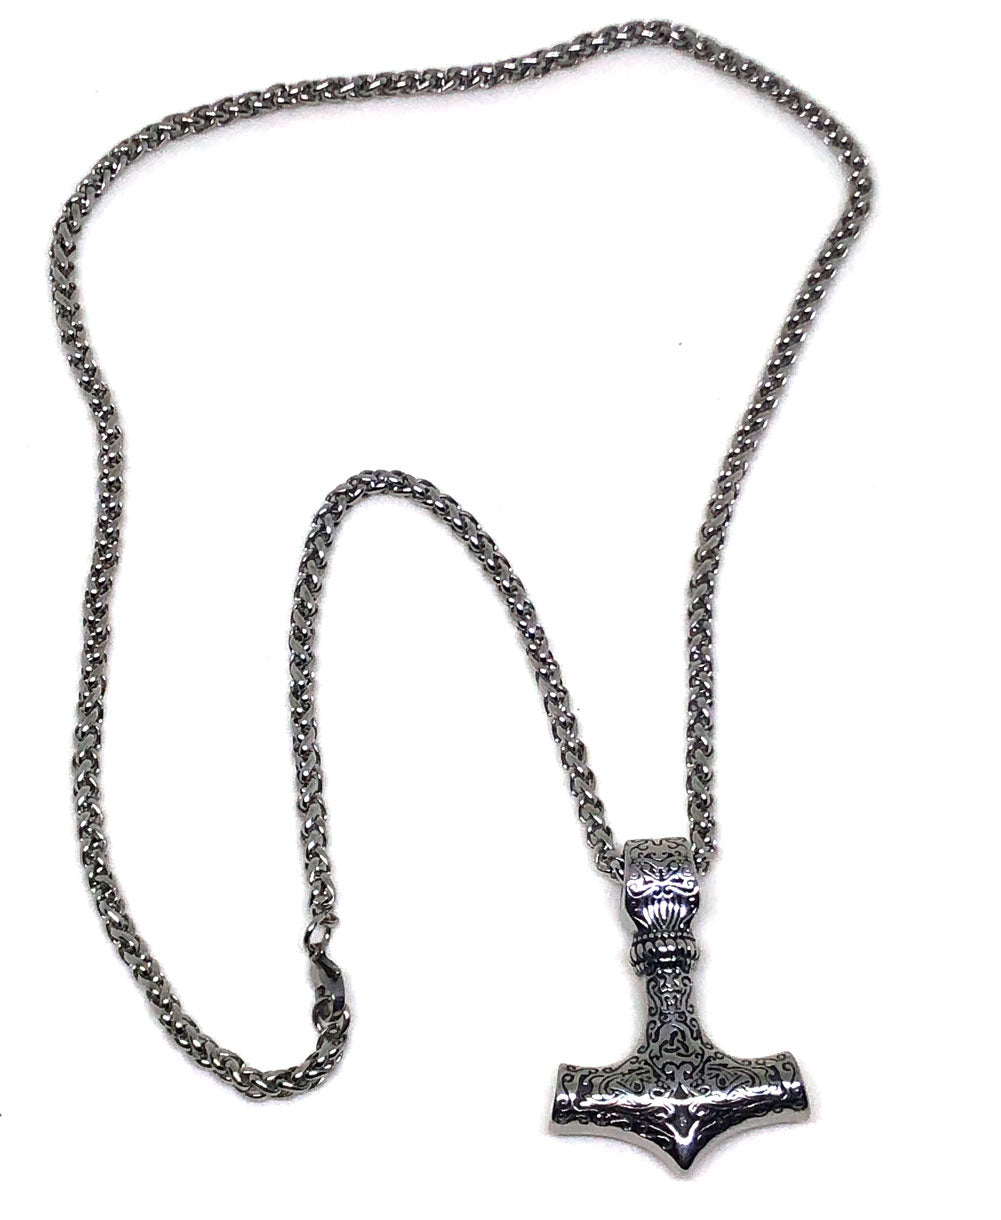 Viking Necklace - Stainless Steel Mjolnir, Thor's Hammer, Pendant - Full view front